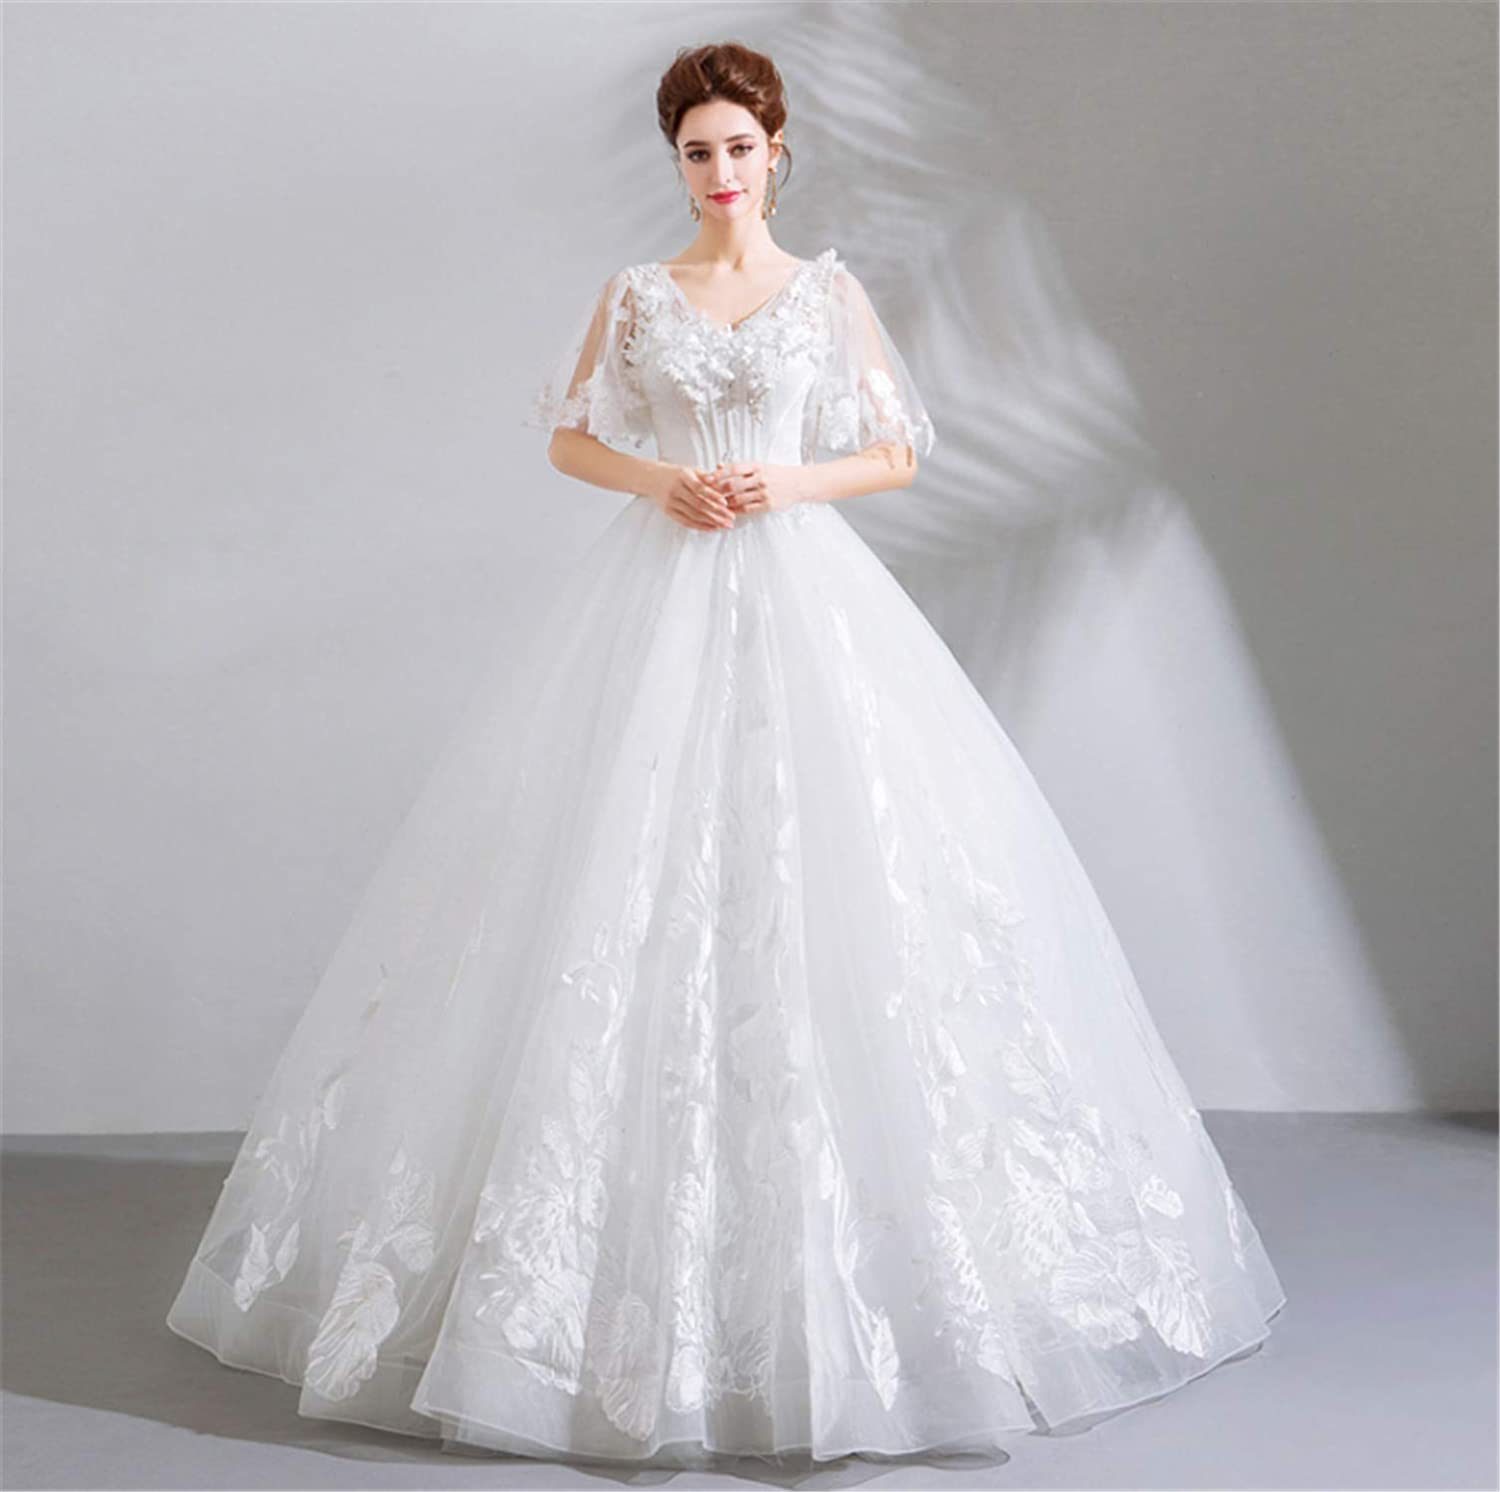 Wedding Dress,Simple Stylish Ladies Round Petticoat Wedding Dress with Lace with Sleeves Perfect Princess White